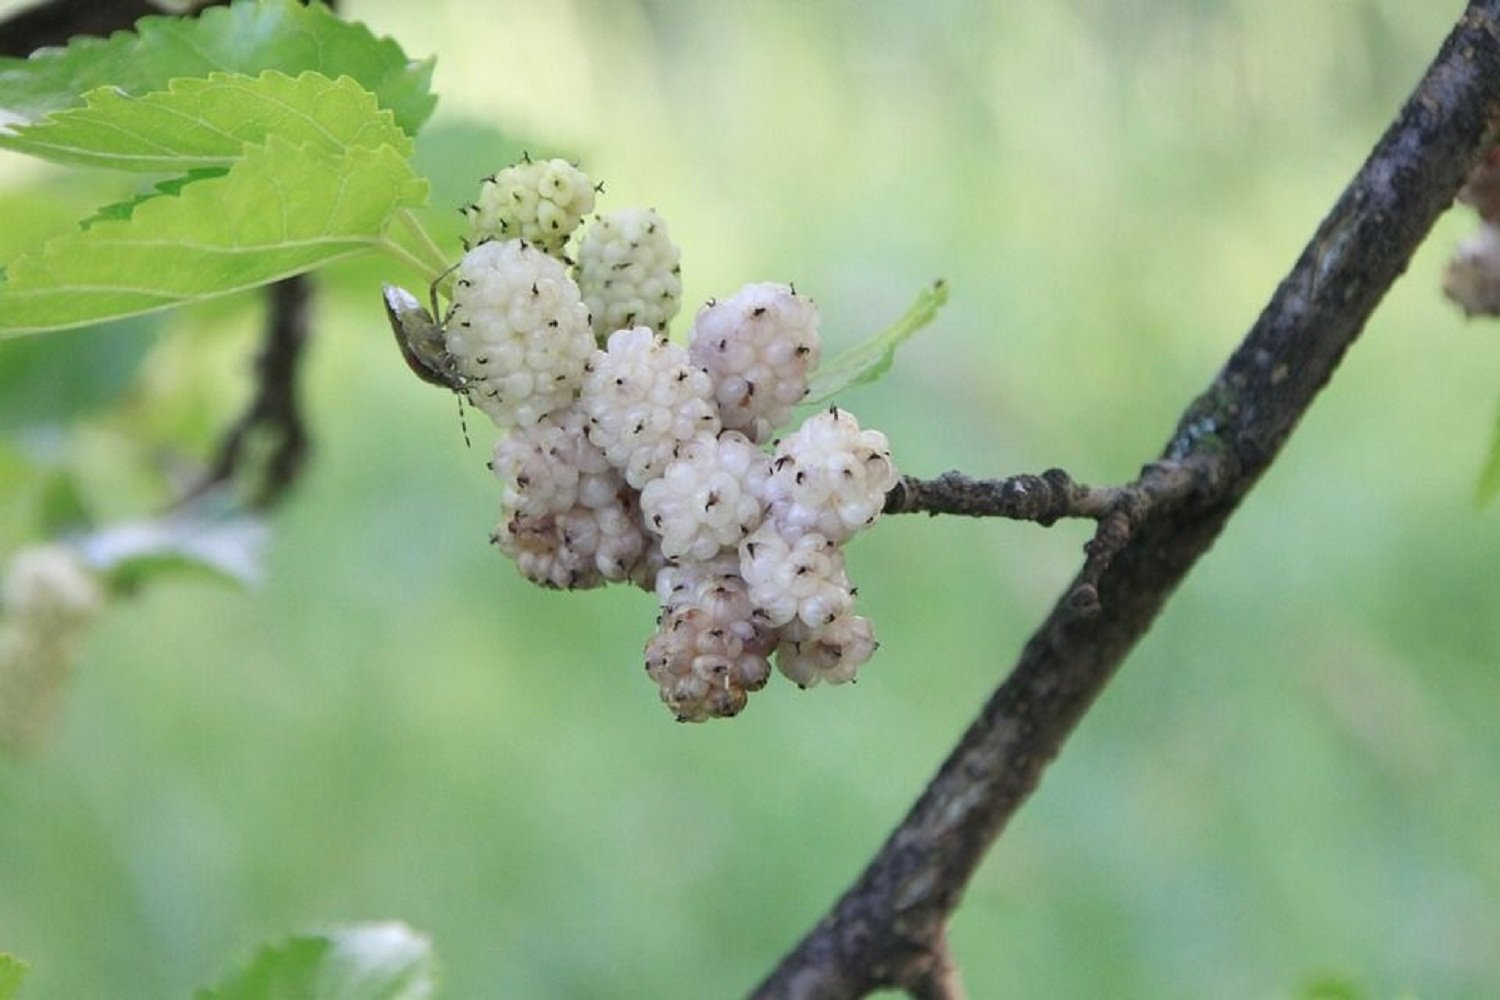 3 Bare Root Plants White Mulberry Tree Edible Berry Fruit Live Healthy 12-18'' Tall V2